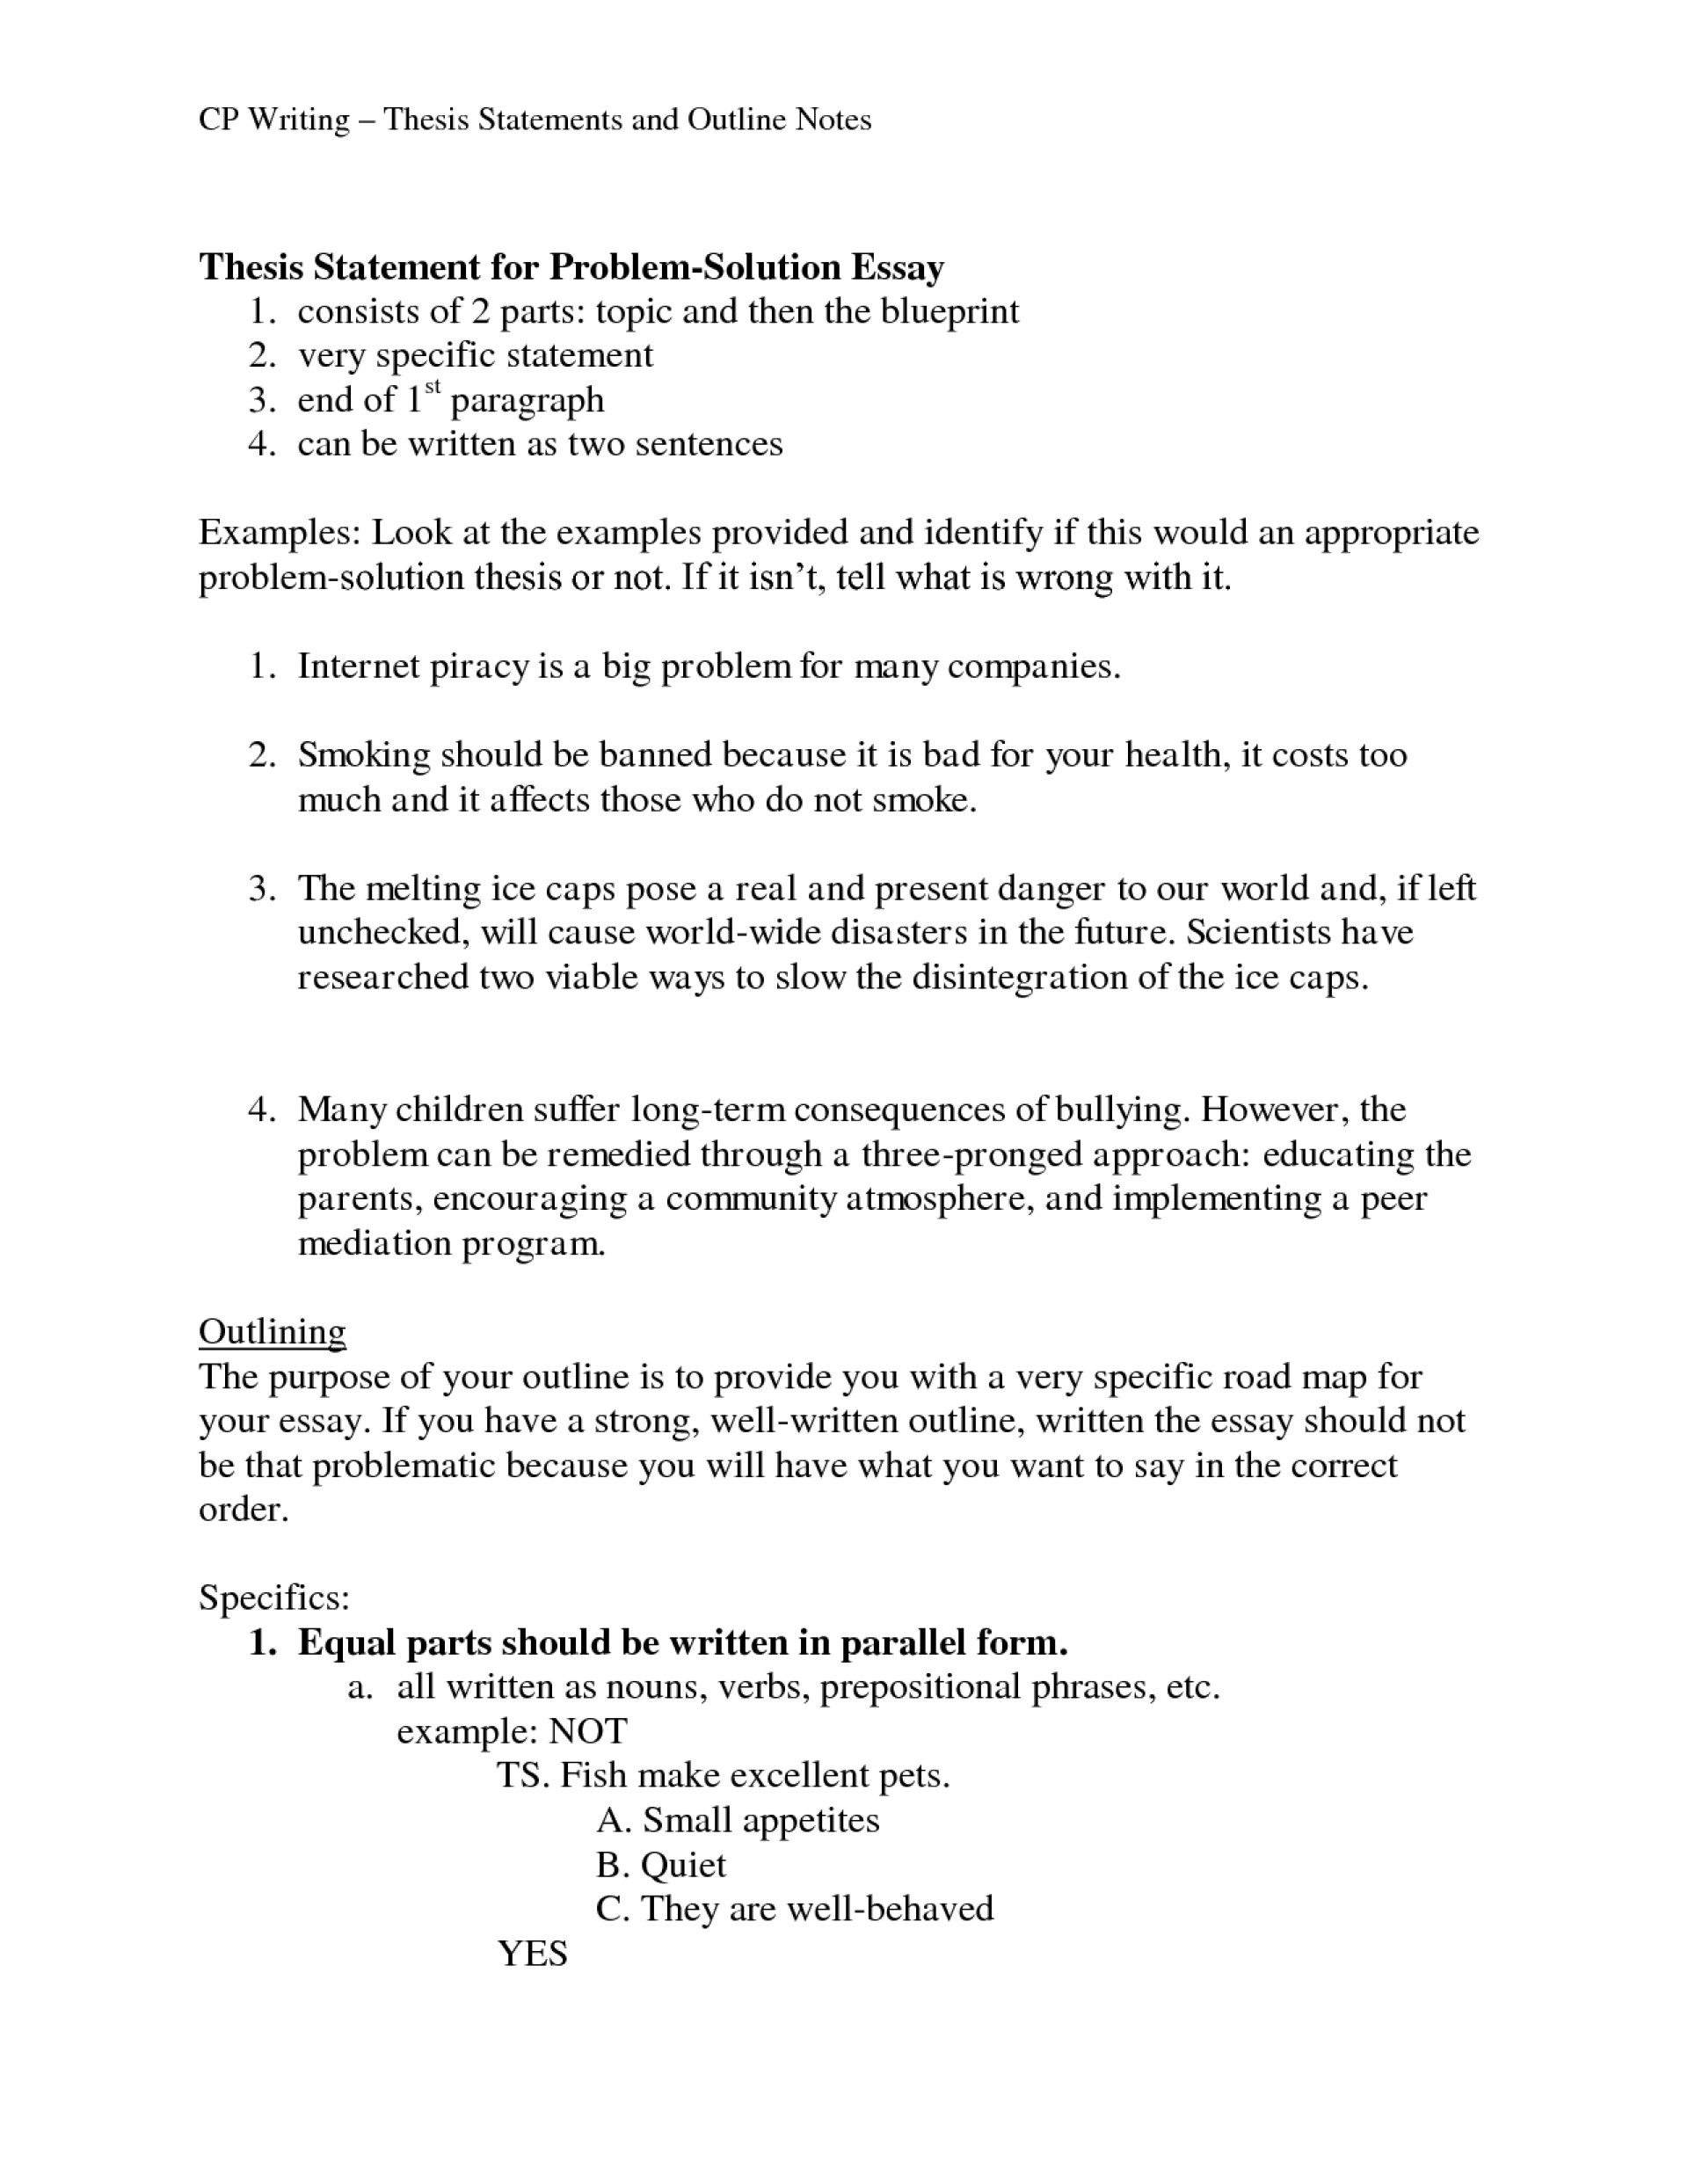 Essays On Business Ethics  A Modest Proposal Essay Topics also Thesis In An Essay  Research Paper Good Thesis Statement For Example  Examples Of Argumentative Thesis Statements For Essays